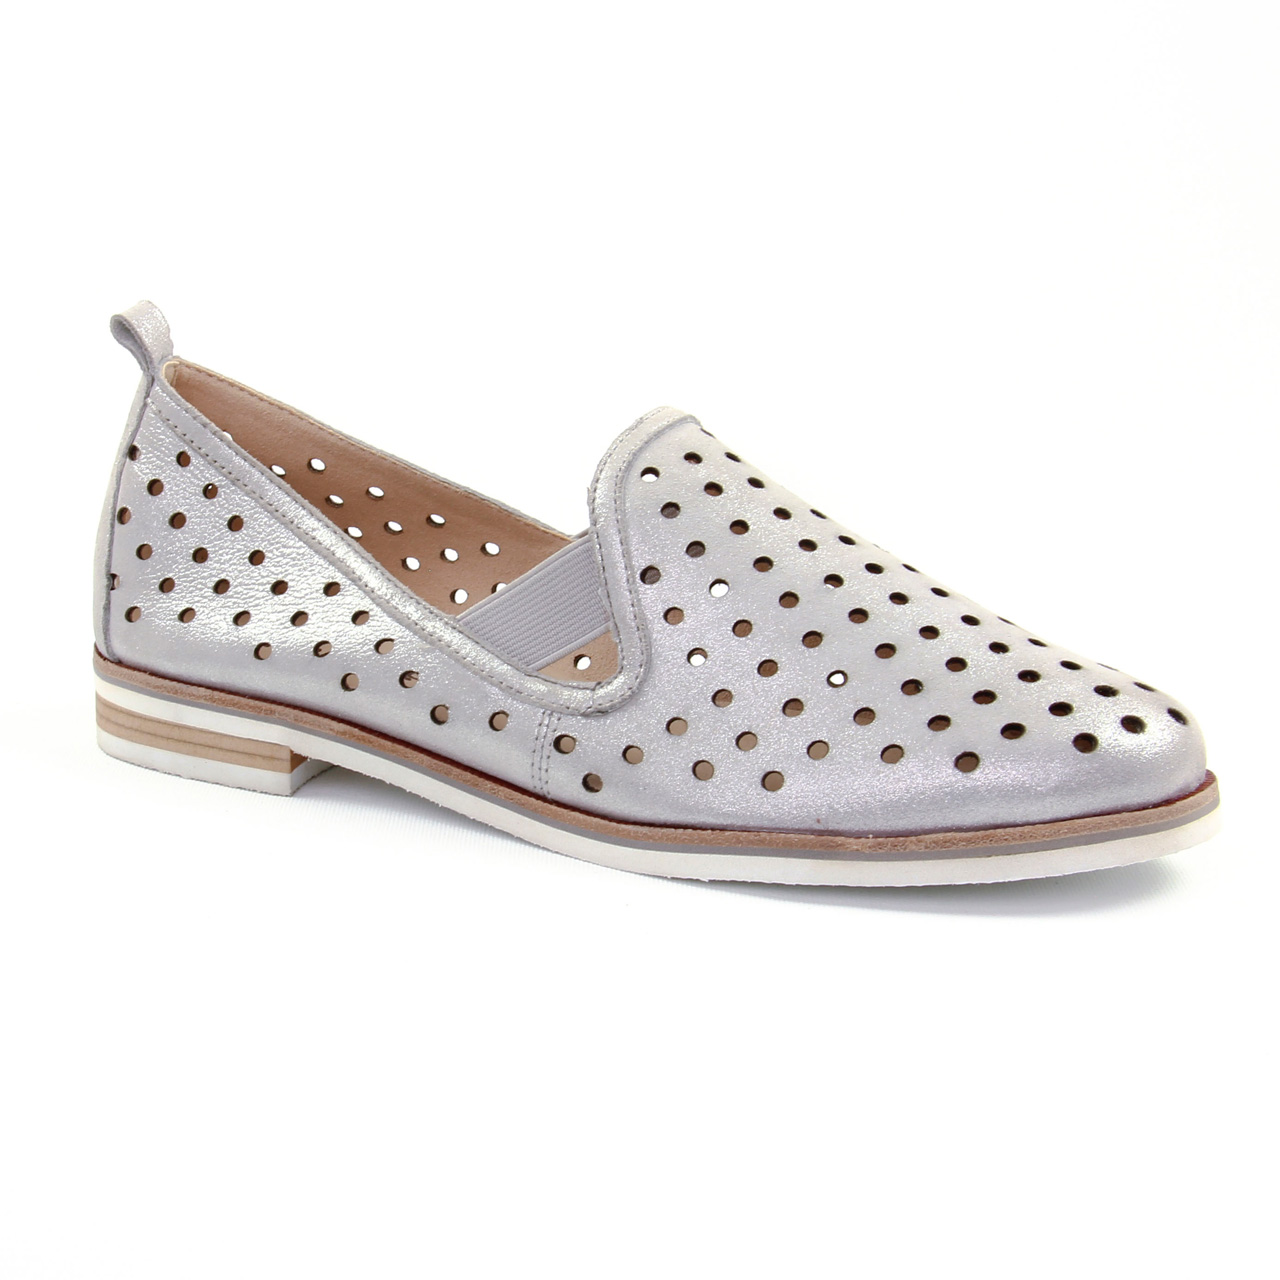 Chaussures Lazutom grises Casual femme C5Dbpk